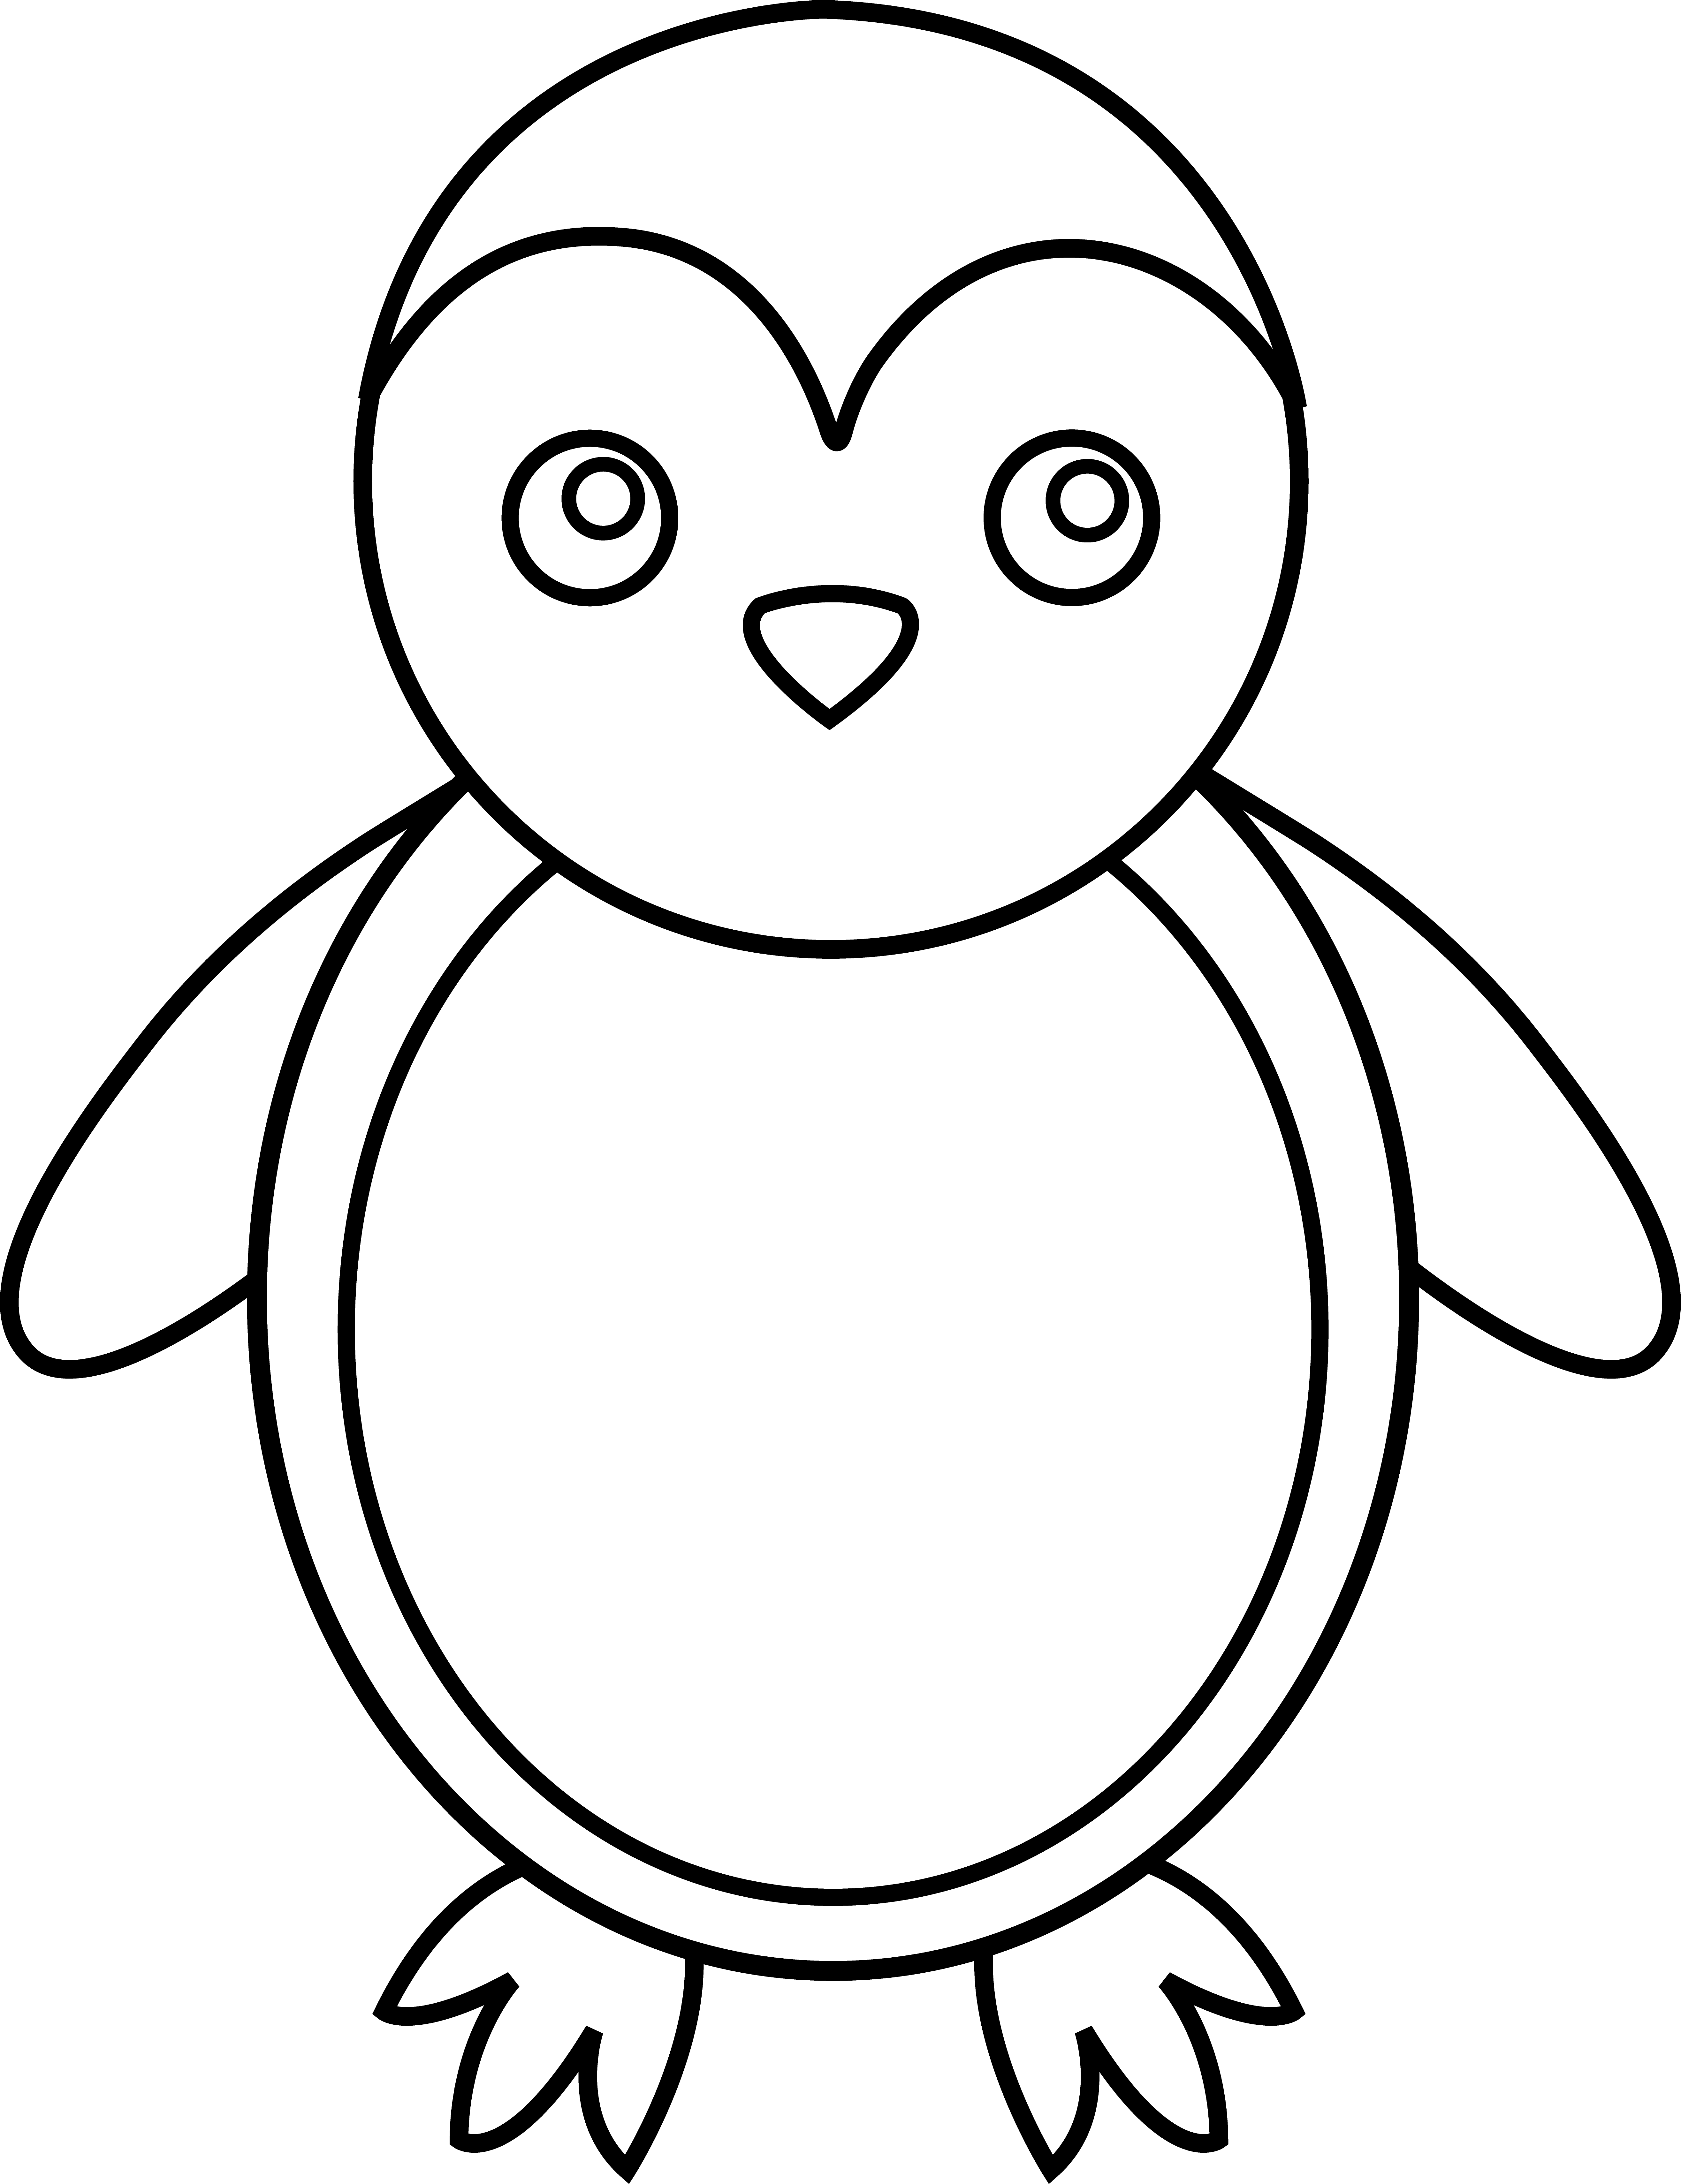 cartoon penguin coloring pages penguin coloring pages getcoloringpagescom cartoon penguin pages coloring